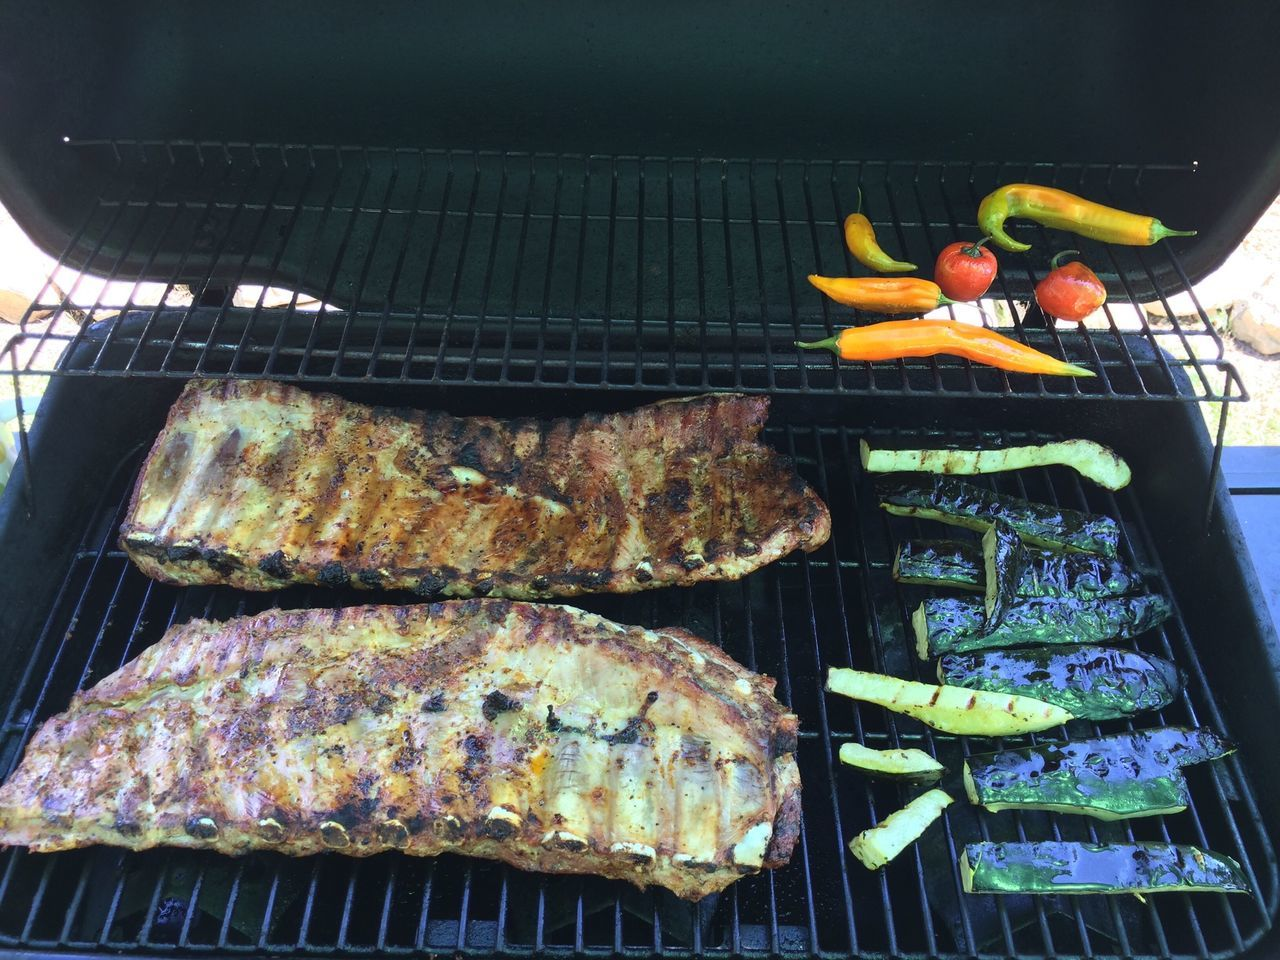 barbecue, grilled, barbecue grill, food and drink, food, meat, skewer, preparation, healthy eating, freshness, no people, outdoors, kebab, day, close-up